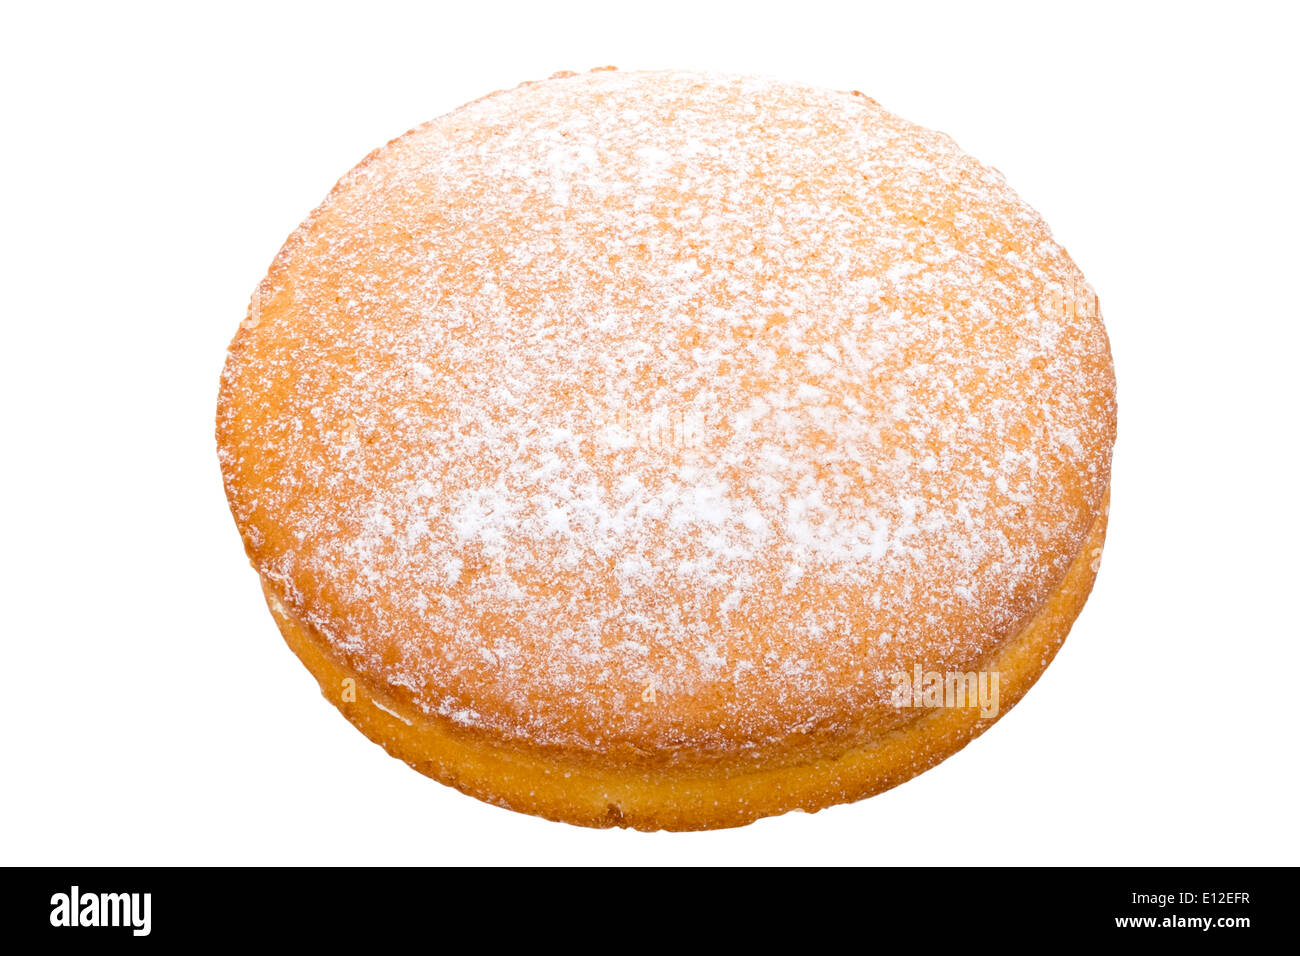 Victoria sponge cake shot from above & cut out against a white background. - Stock Image